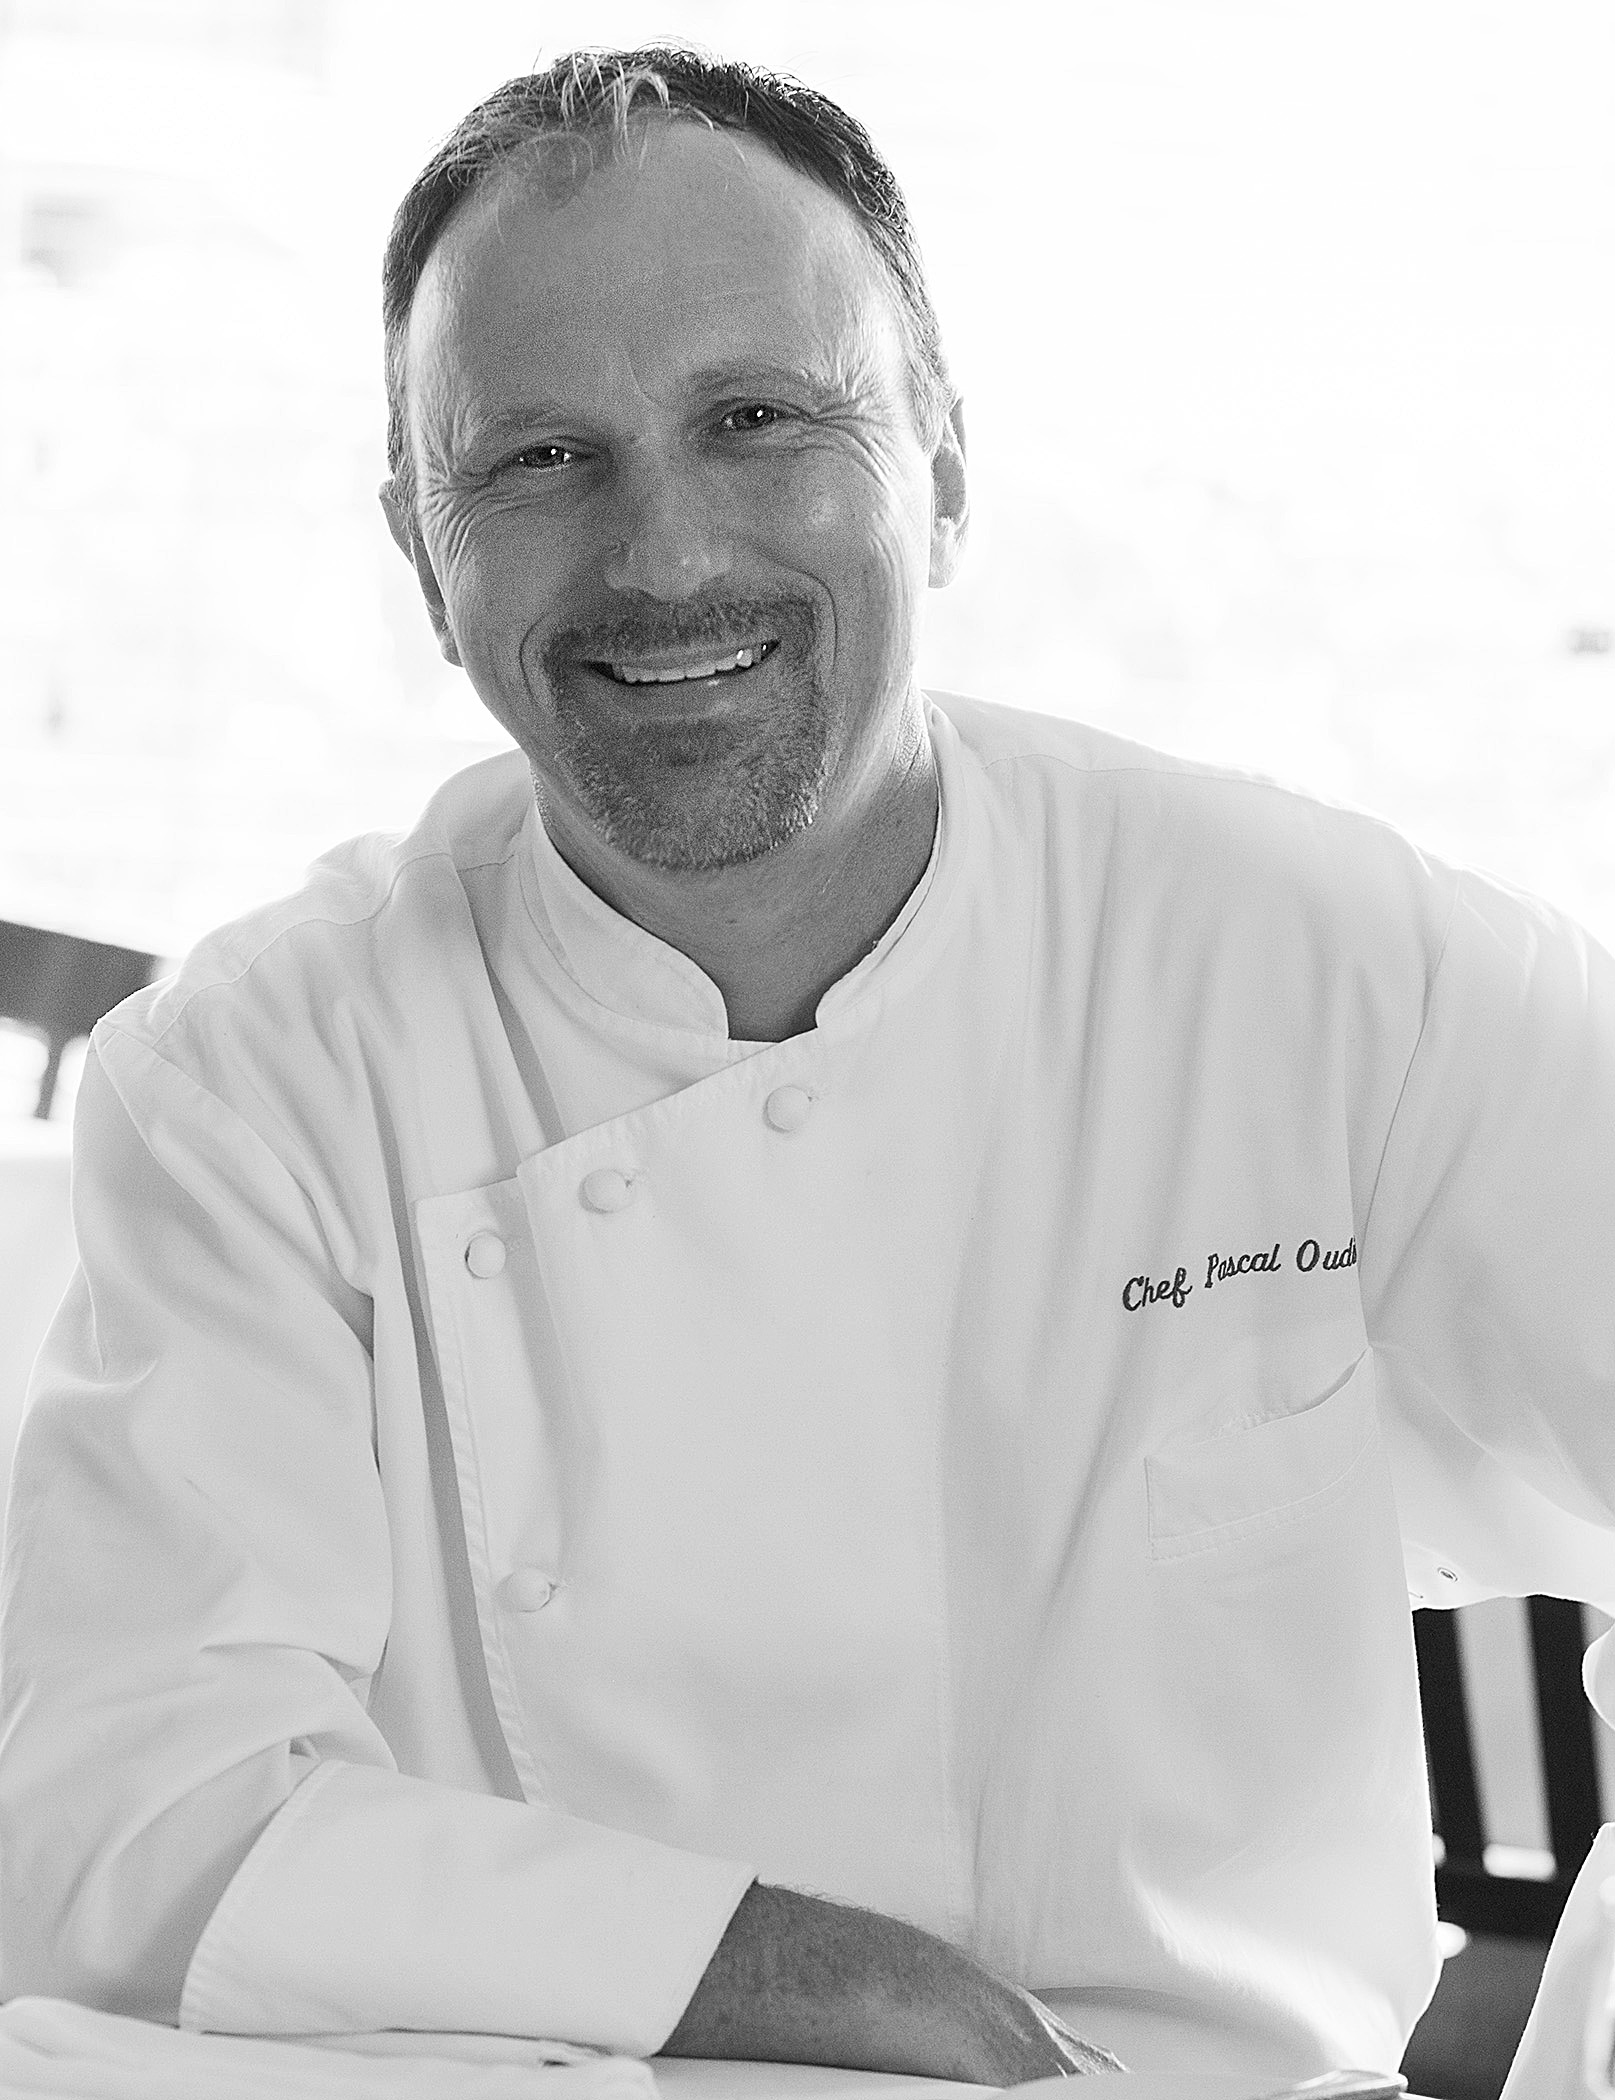 Chef Pascal Oudin